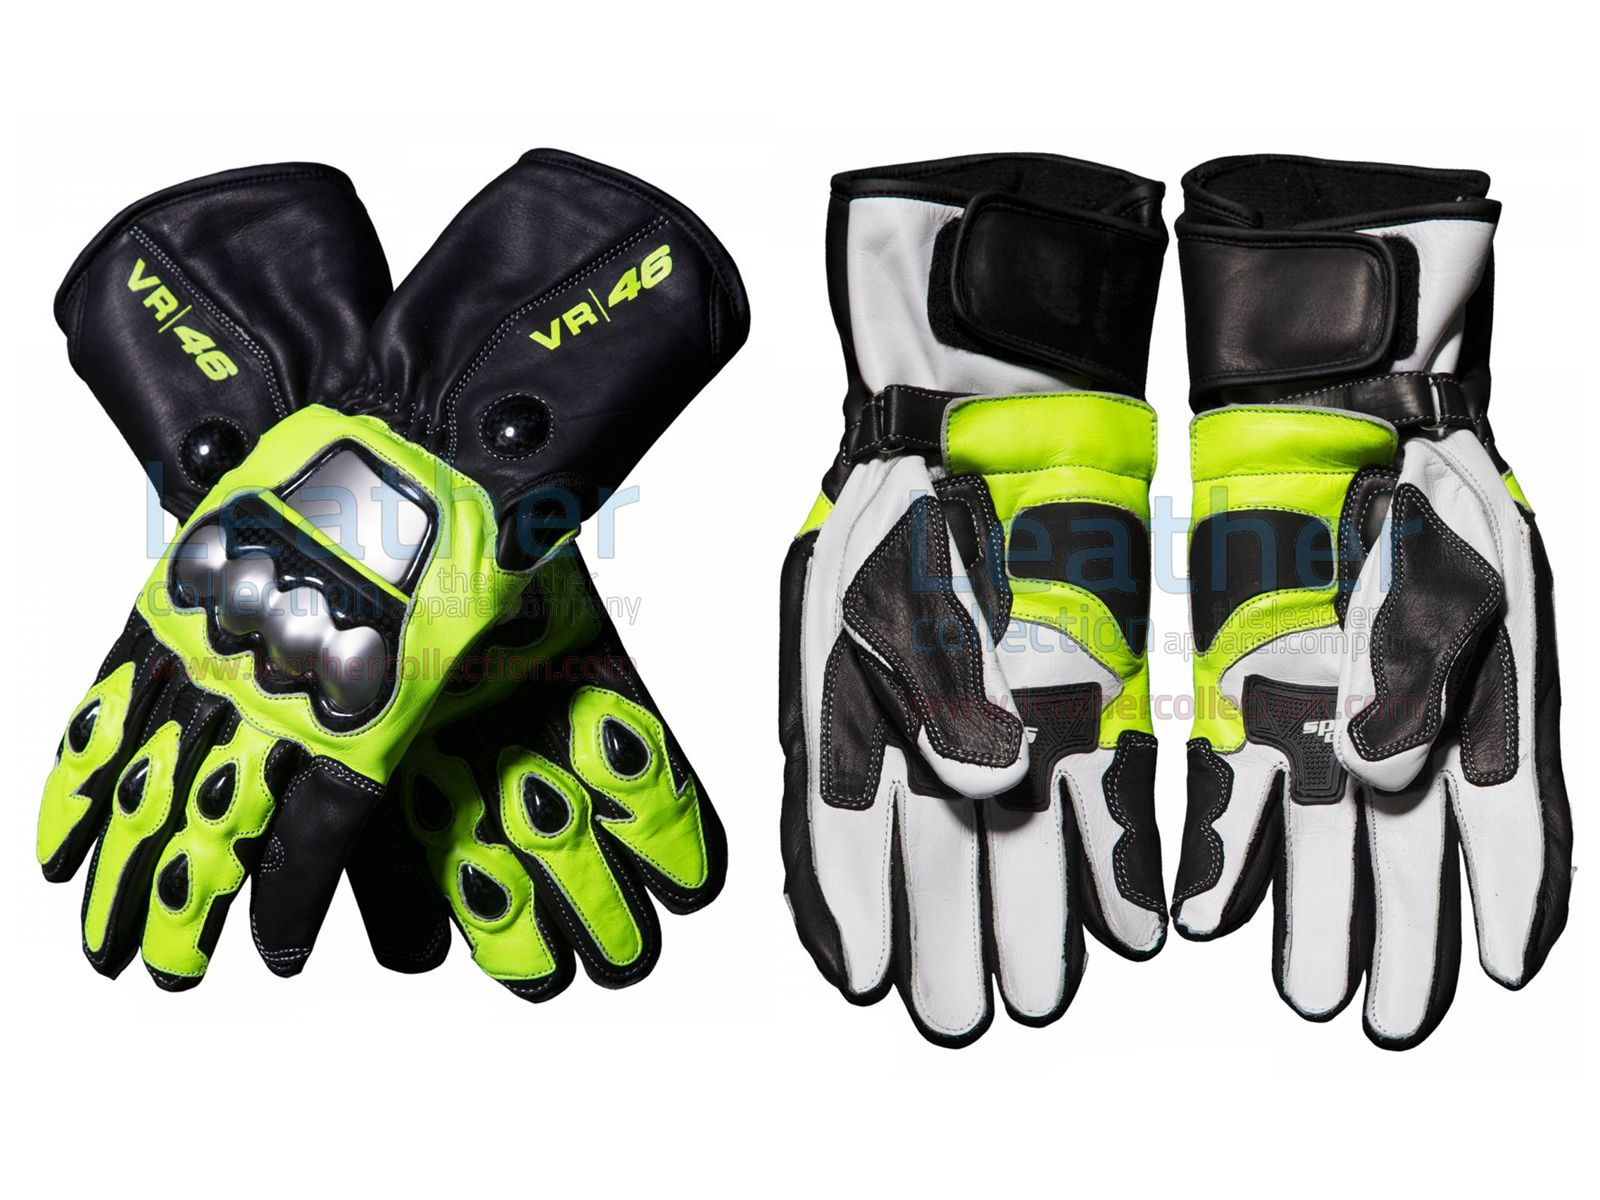 Valentino Rossi 46 Motogp VR46 Leather Motorbike Racing Leather Gloves Pair